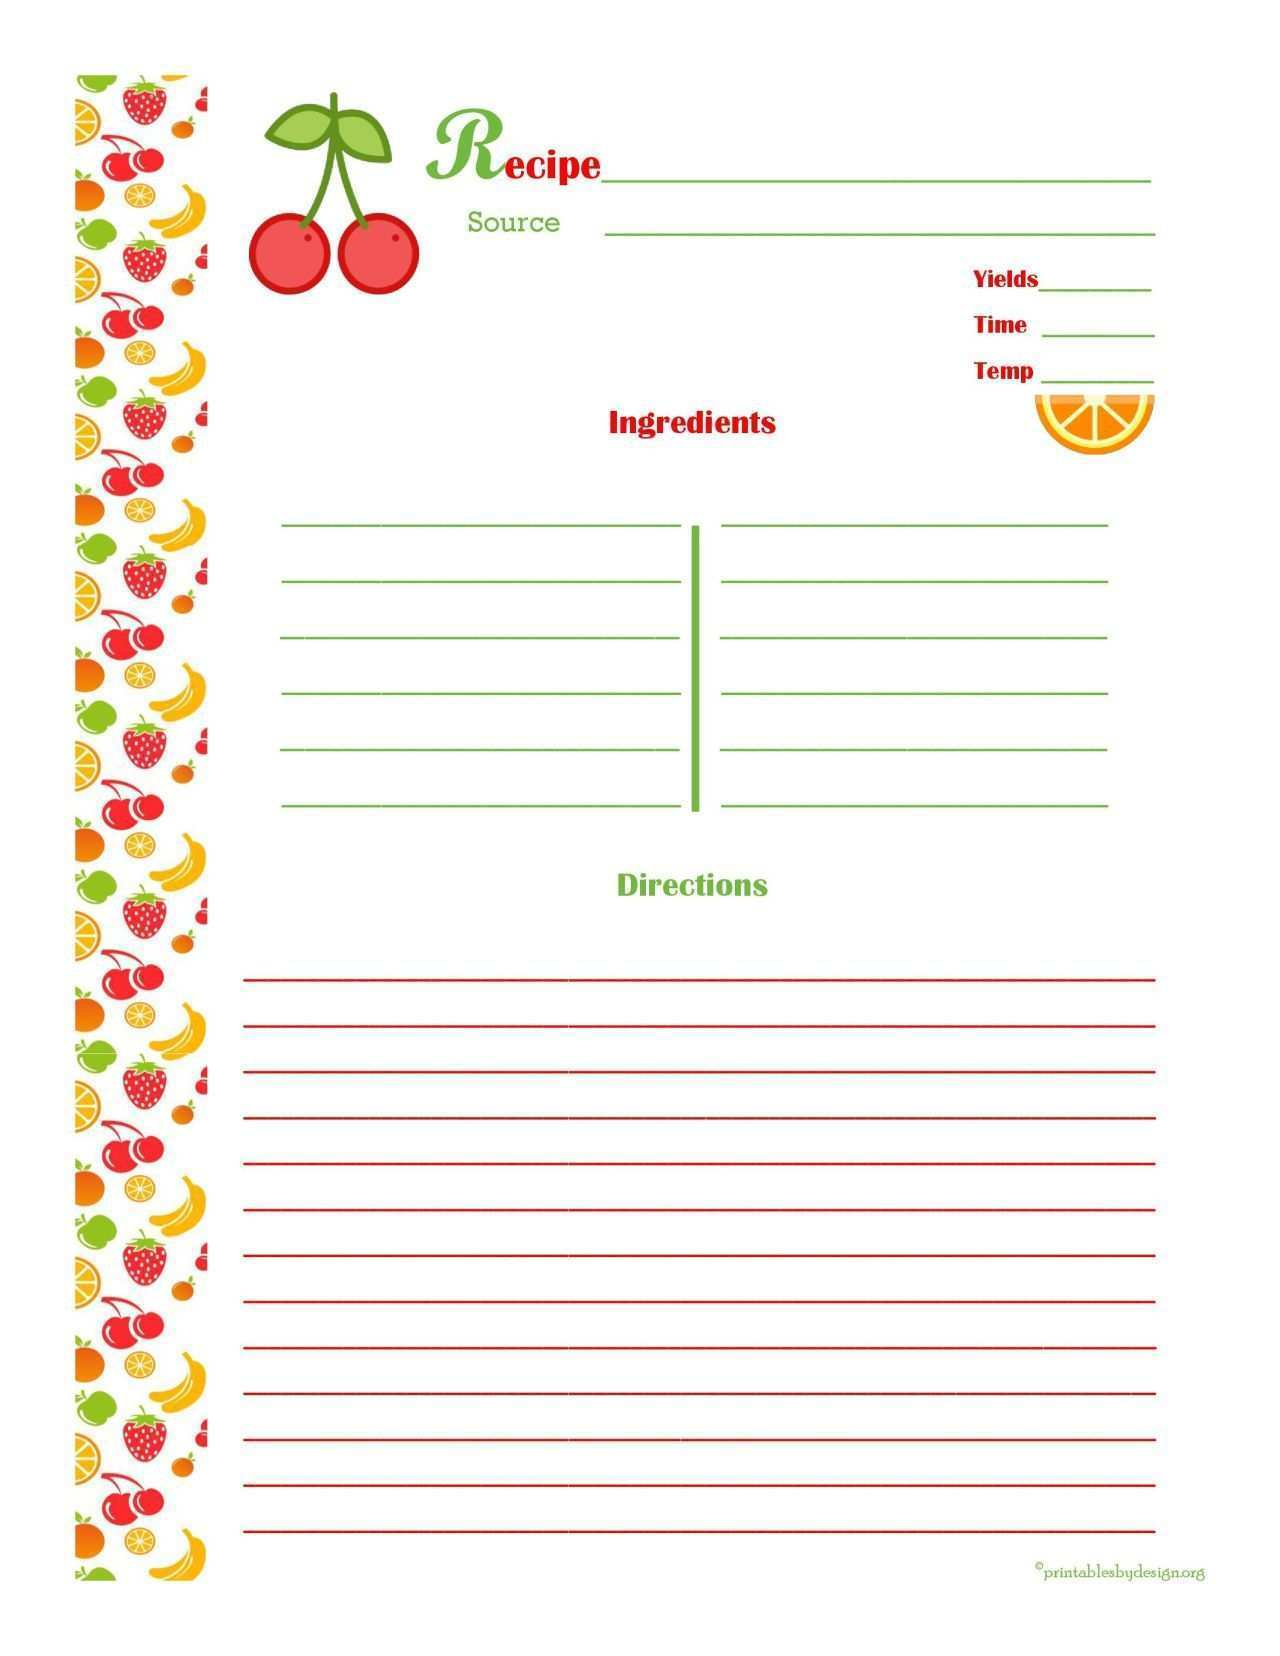 68 How To Make Recipe Card Template In Word Now with How To Make Recipe Card Template In Word